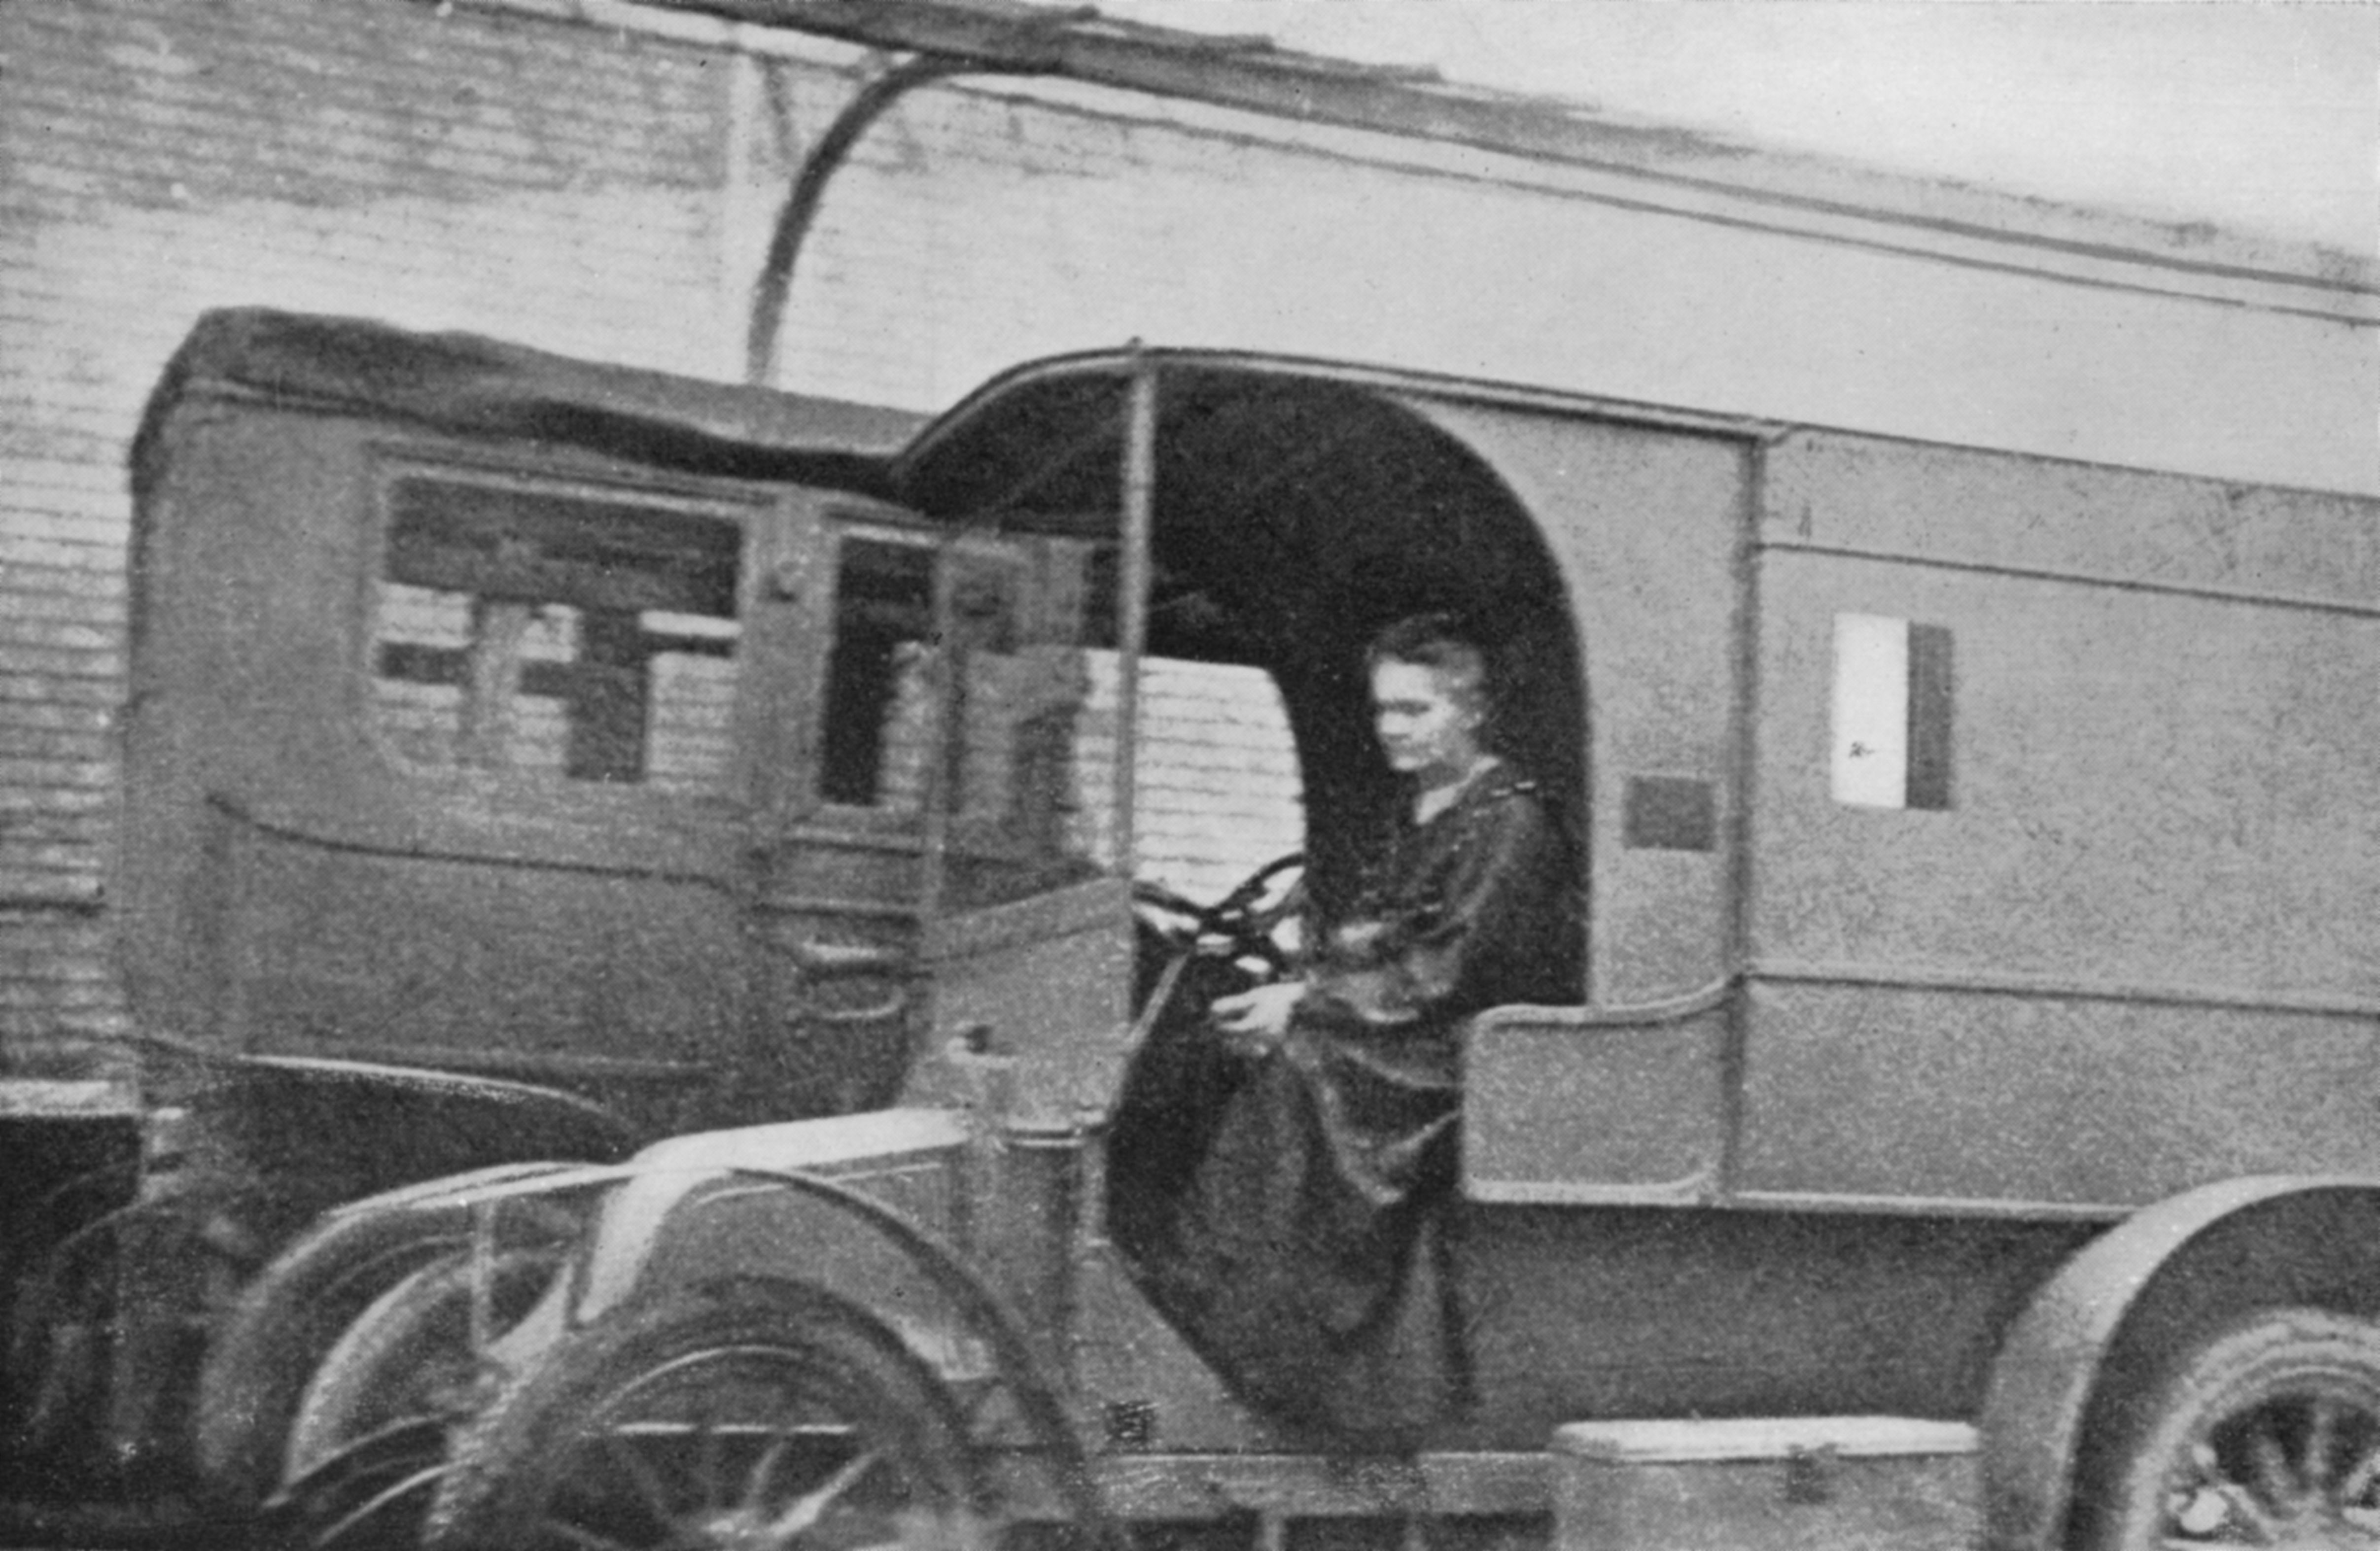 Physicist Marie Curie driving portable radiological unit